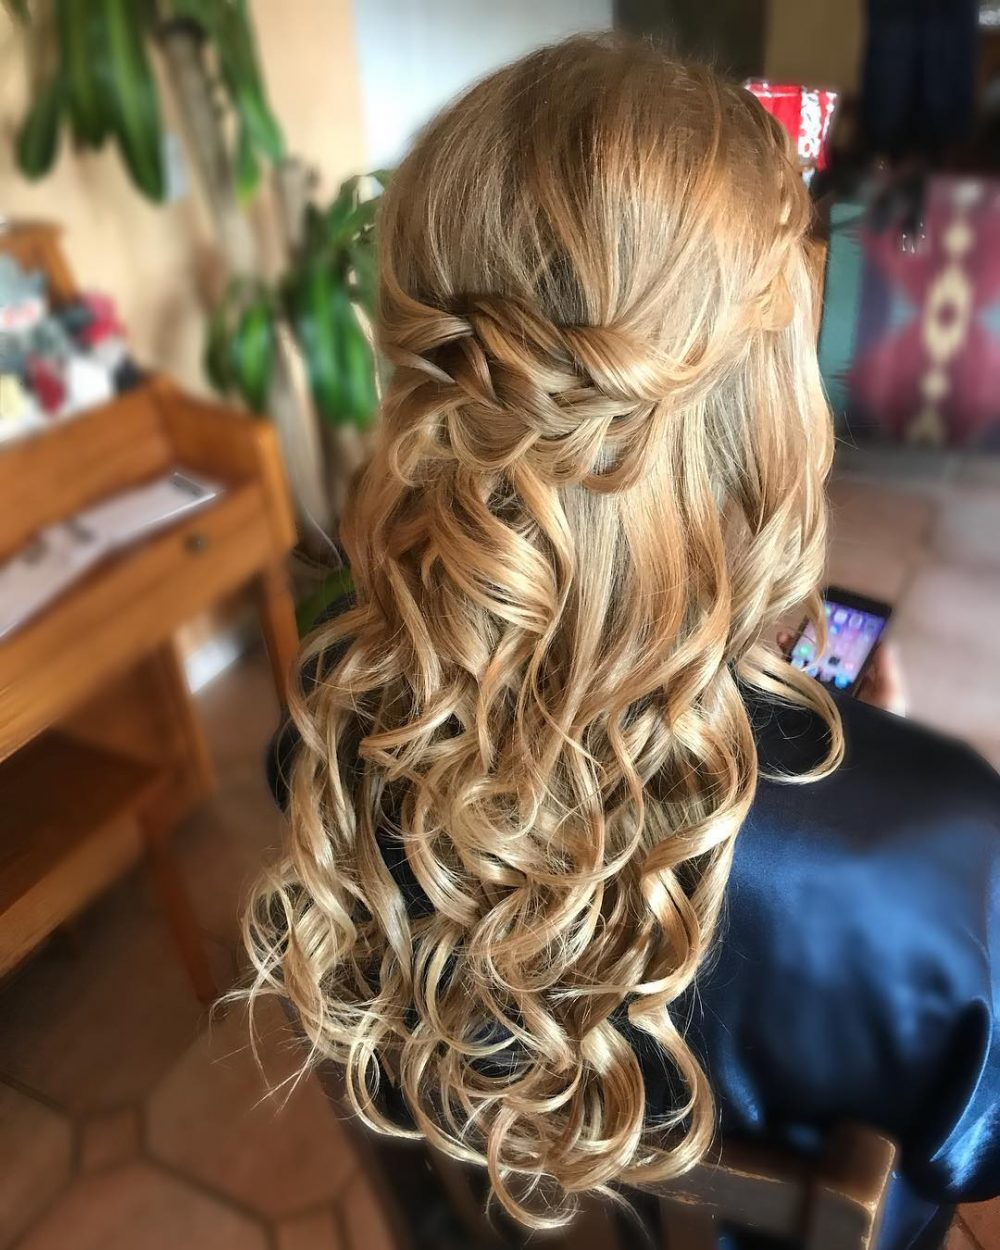 18 Creative And Unique Wedding Hairstyles For Long Hair: Wedding Hairstyles For Long Hair: 24 Creative & Unique